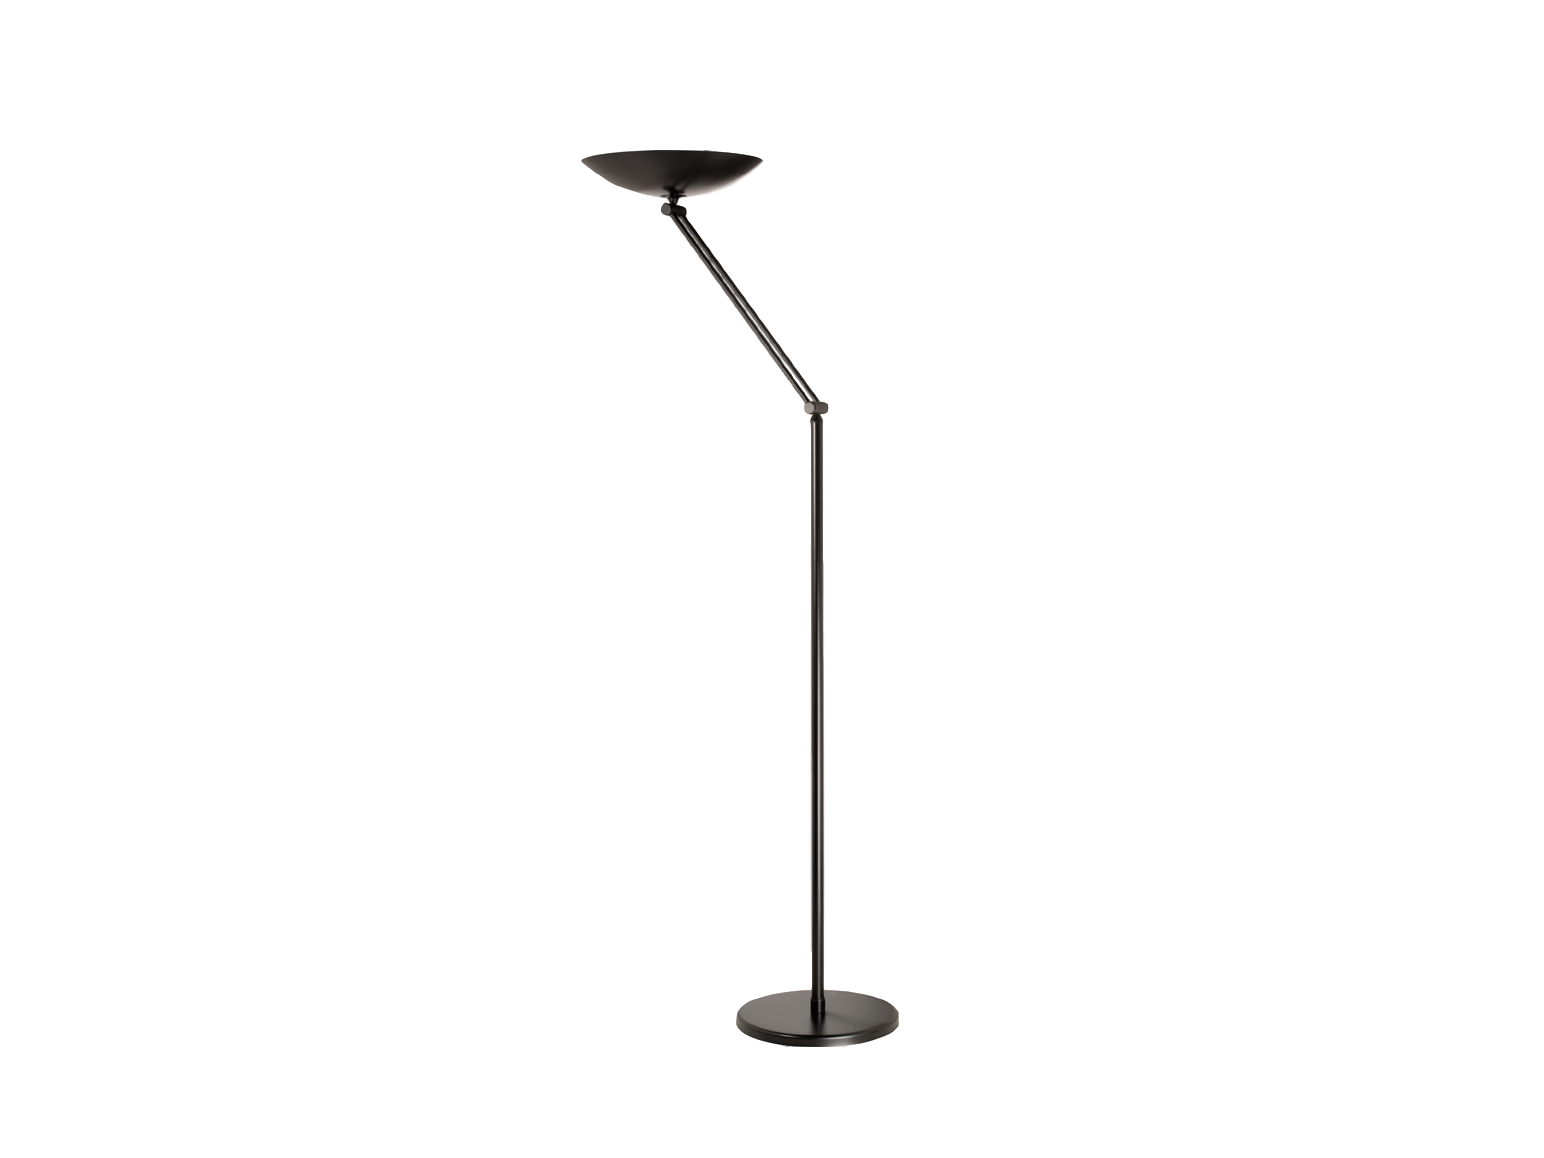 halogene design halogene design lampadaire halogene design noir lampadaire halogene. Black Bedroom Furniture Sets. Home Design Ideas